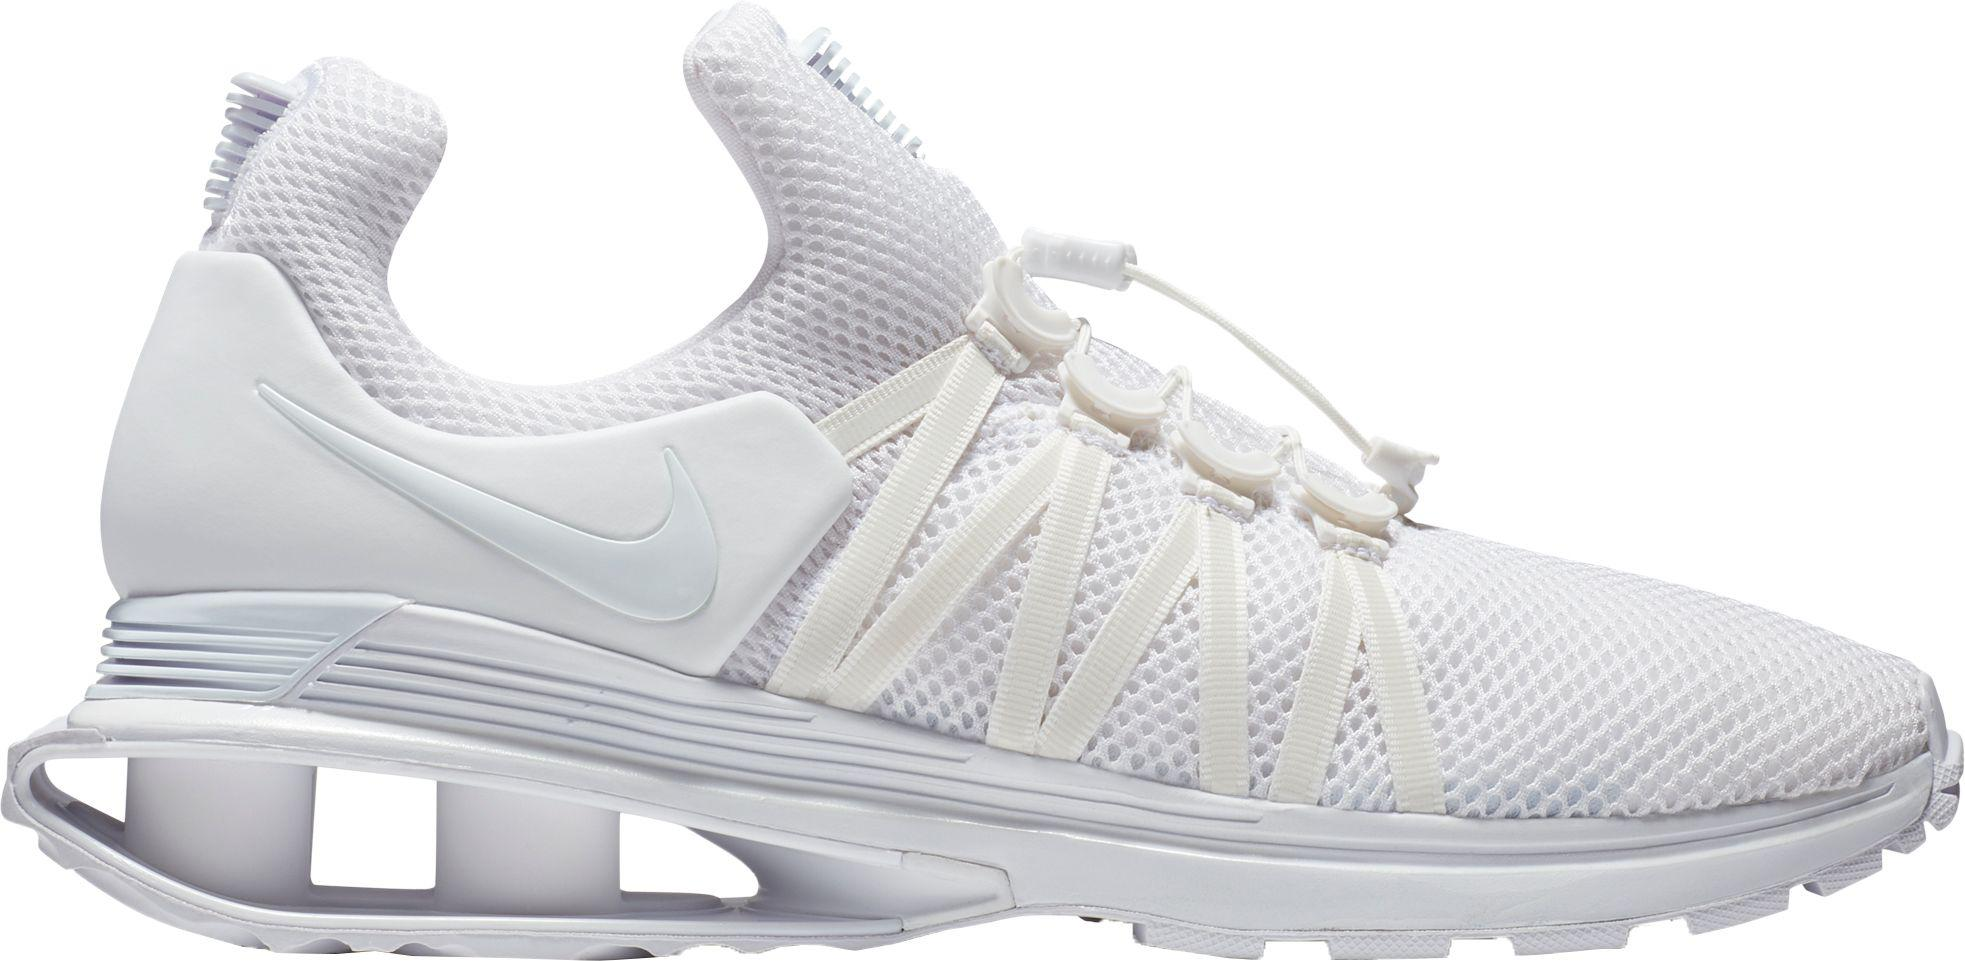 cheap for discount bccfb 5b2a2 Nike - White Shox Gravity Shoes for Men - Lyst